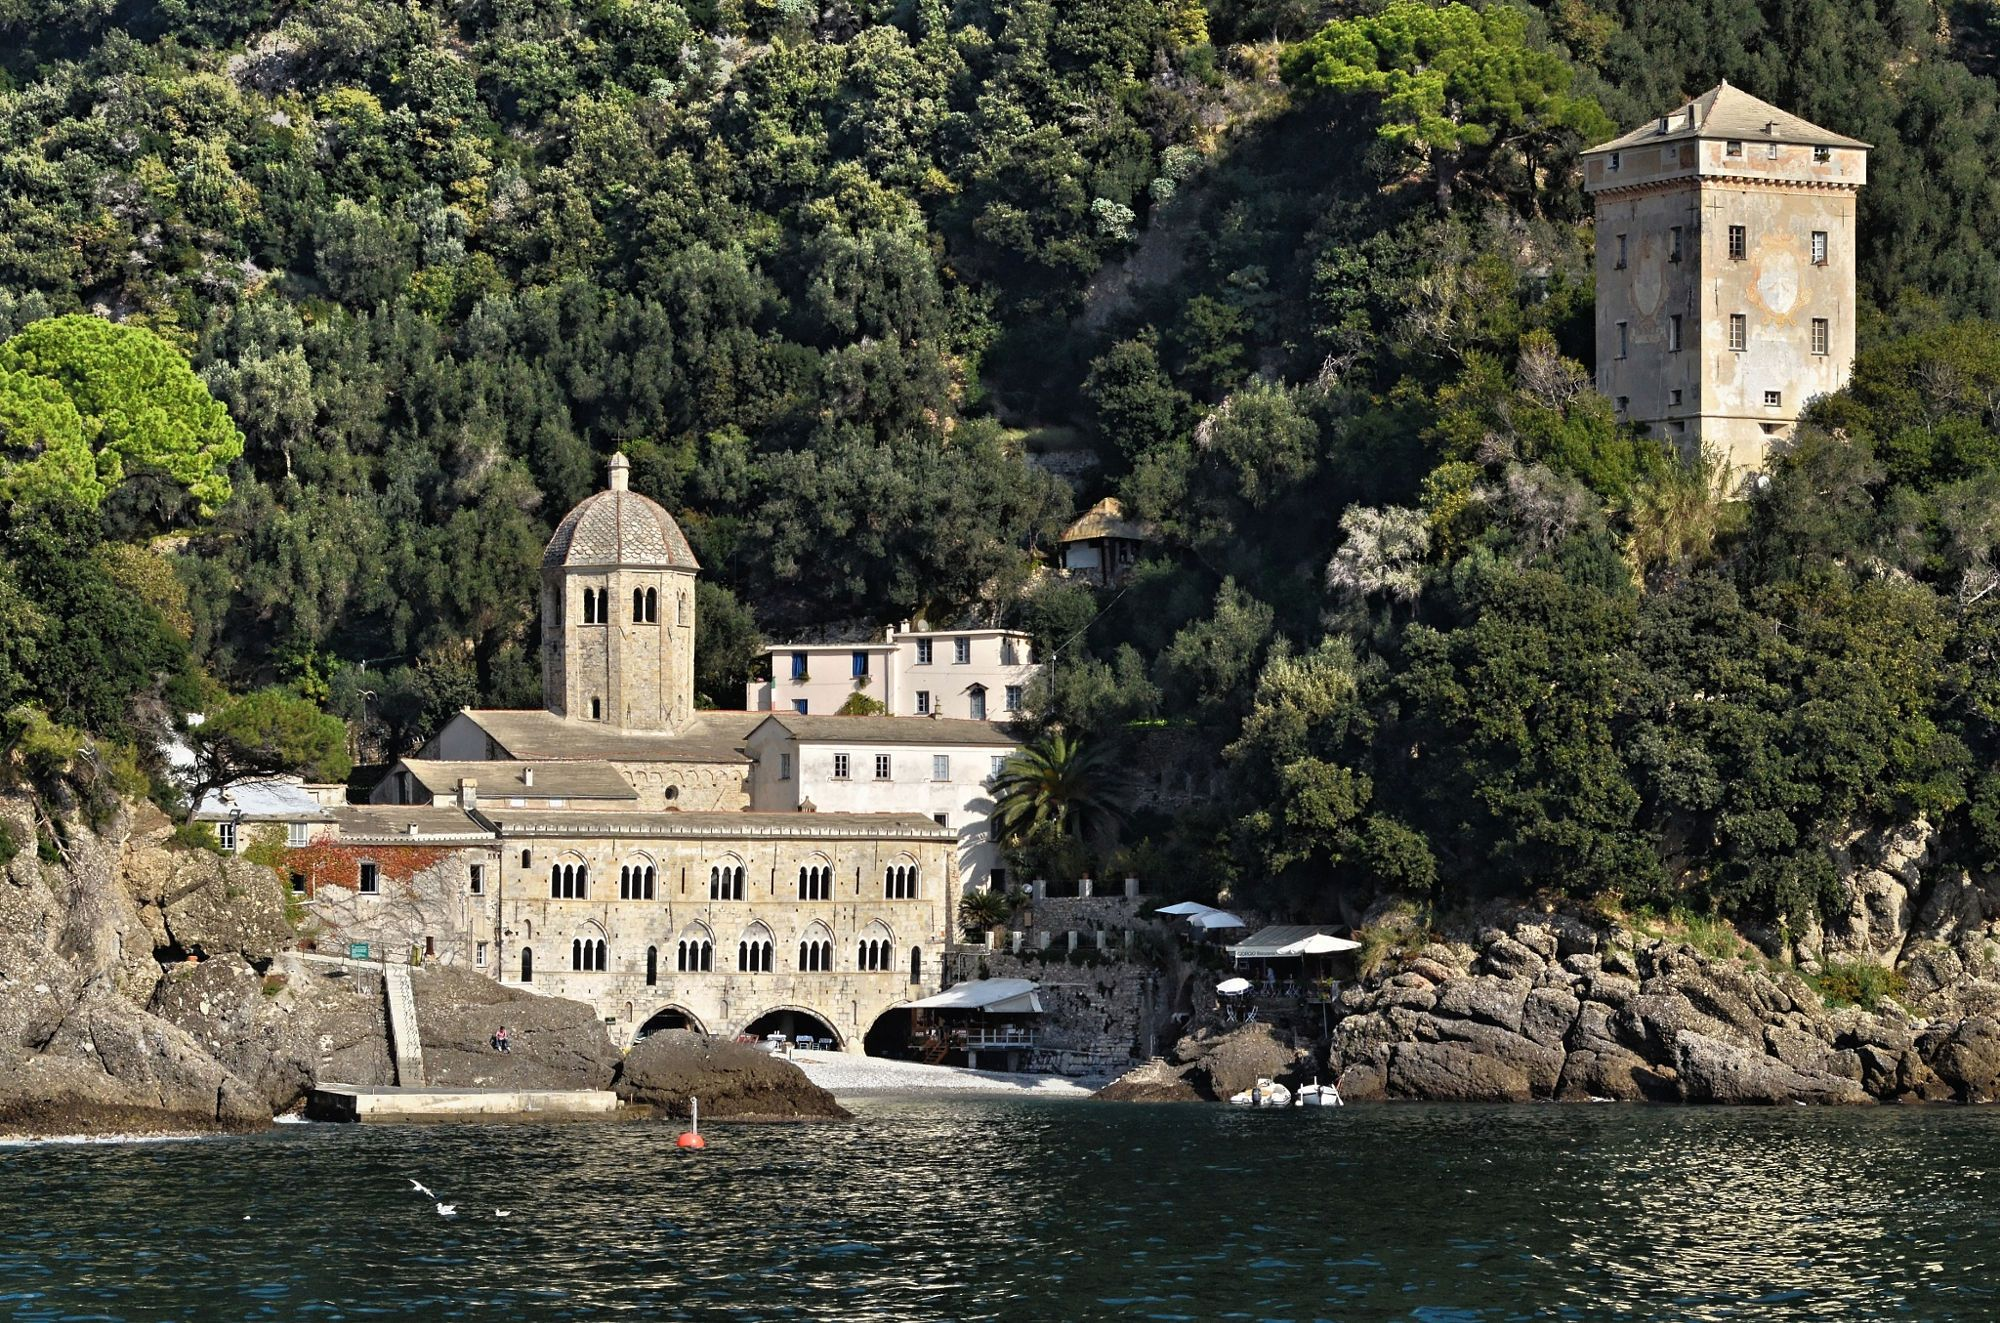 San Fruttuoso Abbey, Italy by Angelo Ferraris on 500px